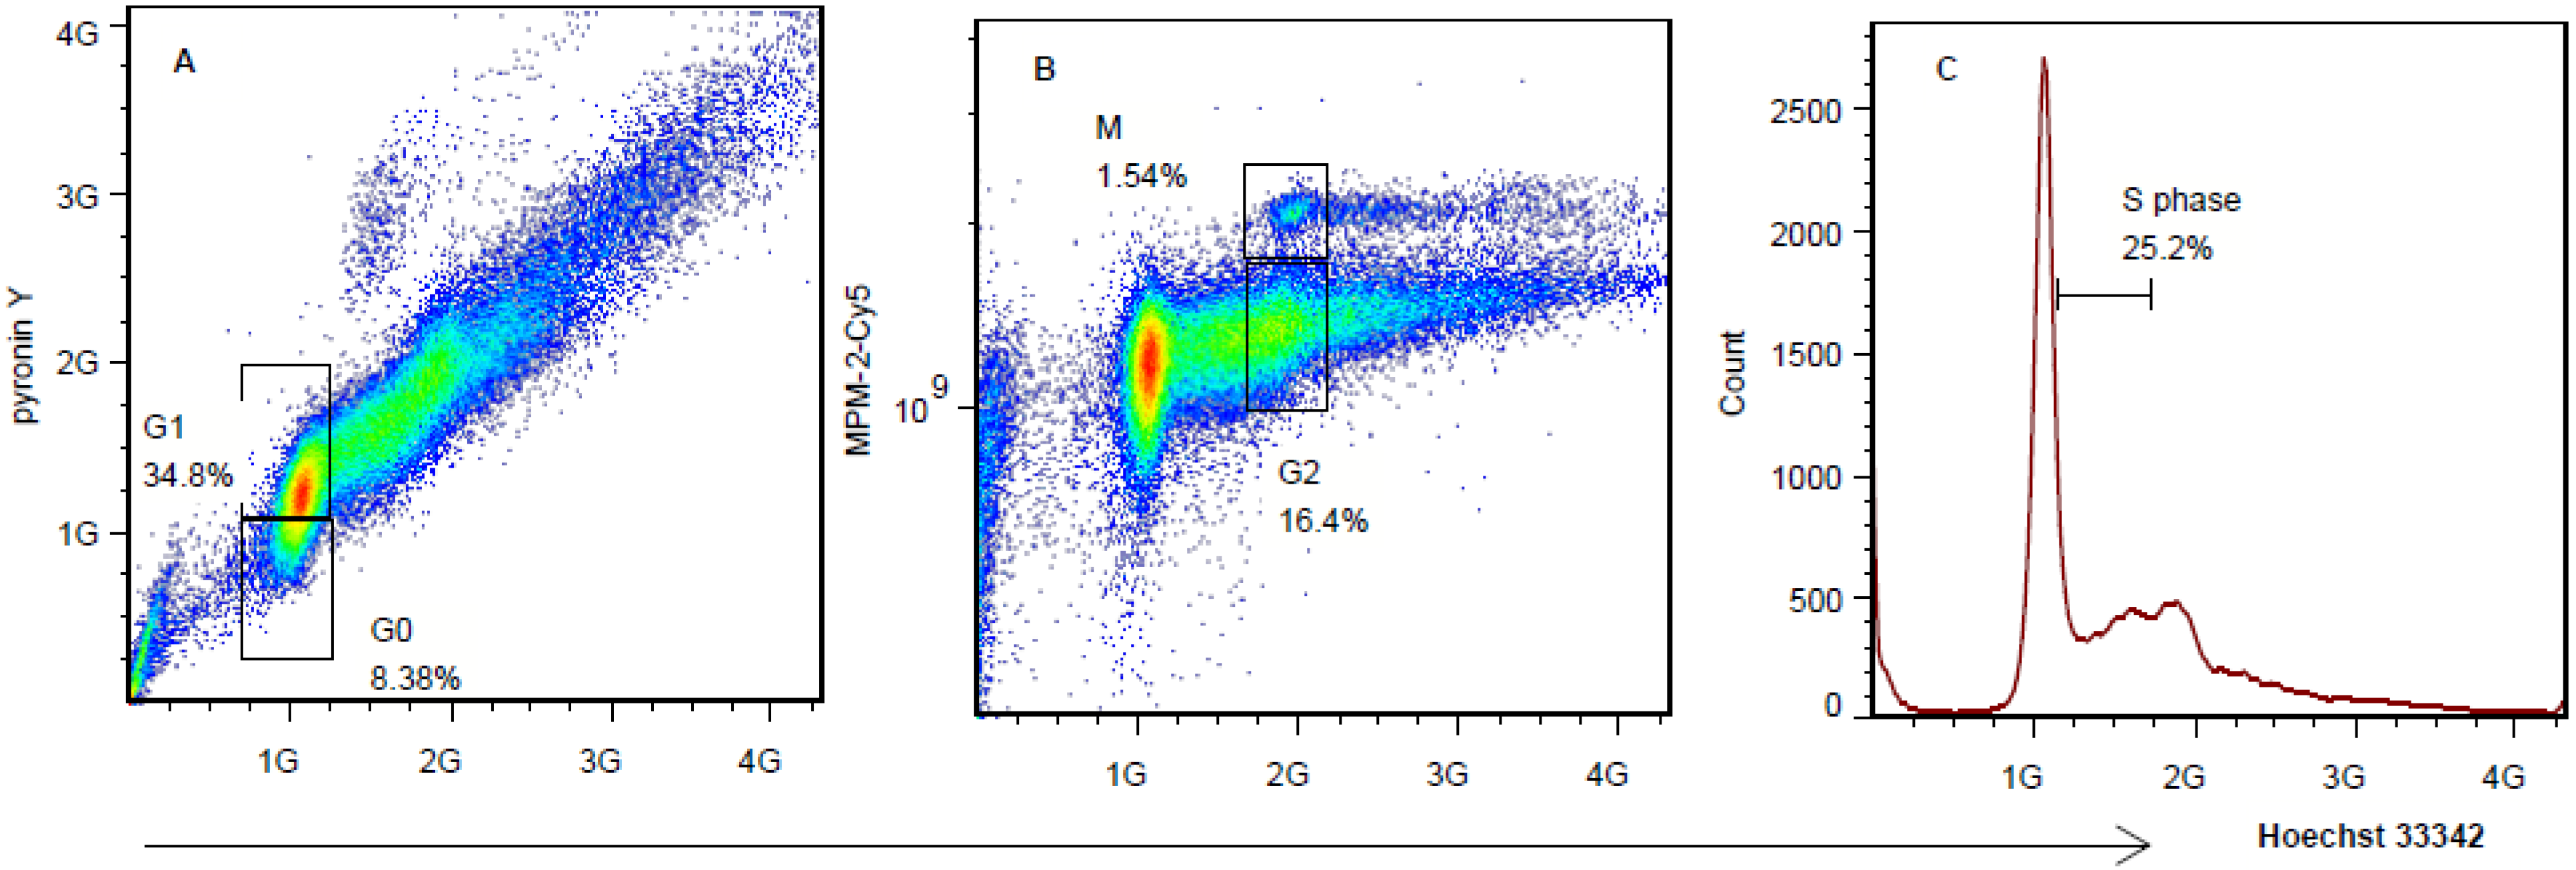 A Triple Staining Method for Accurate Cell Cycle Analysis Using Multiparameter Flow Cytometry